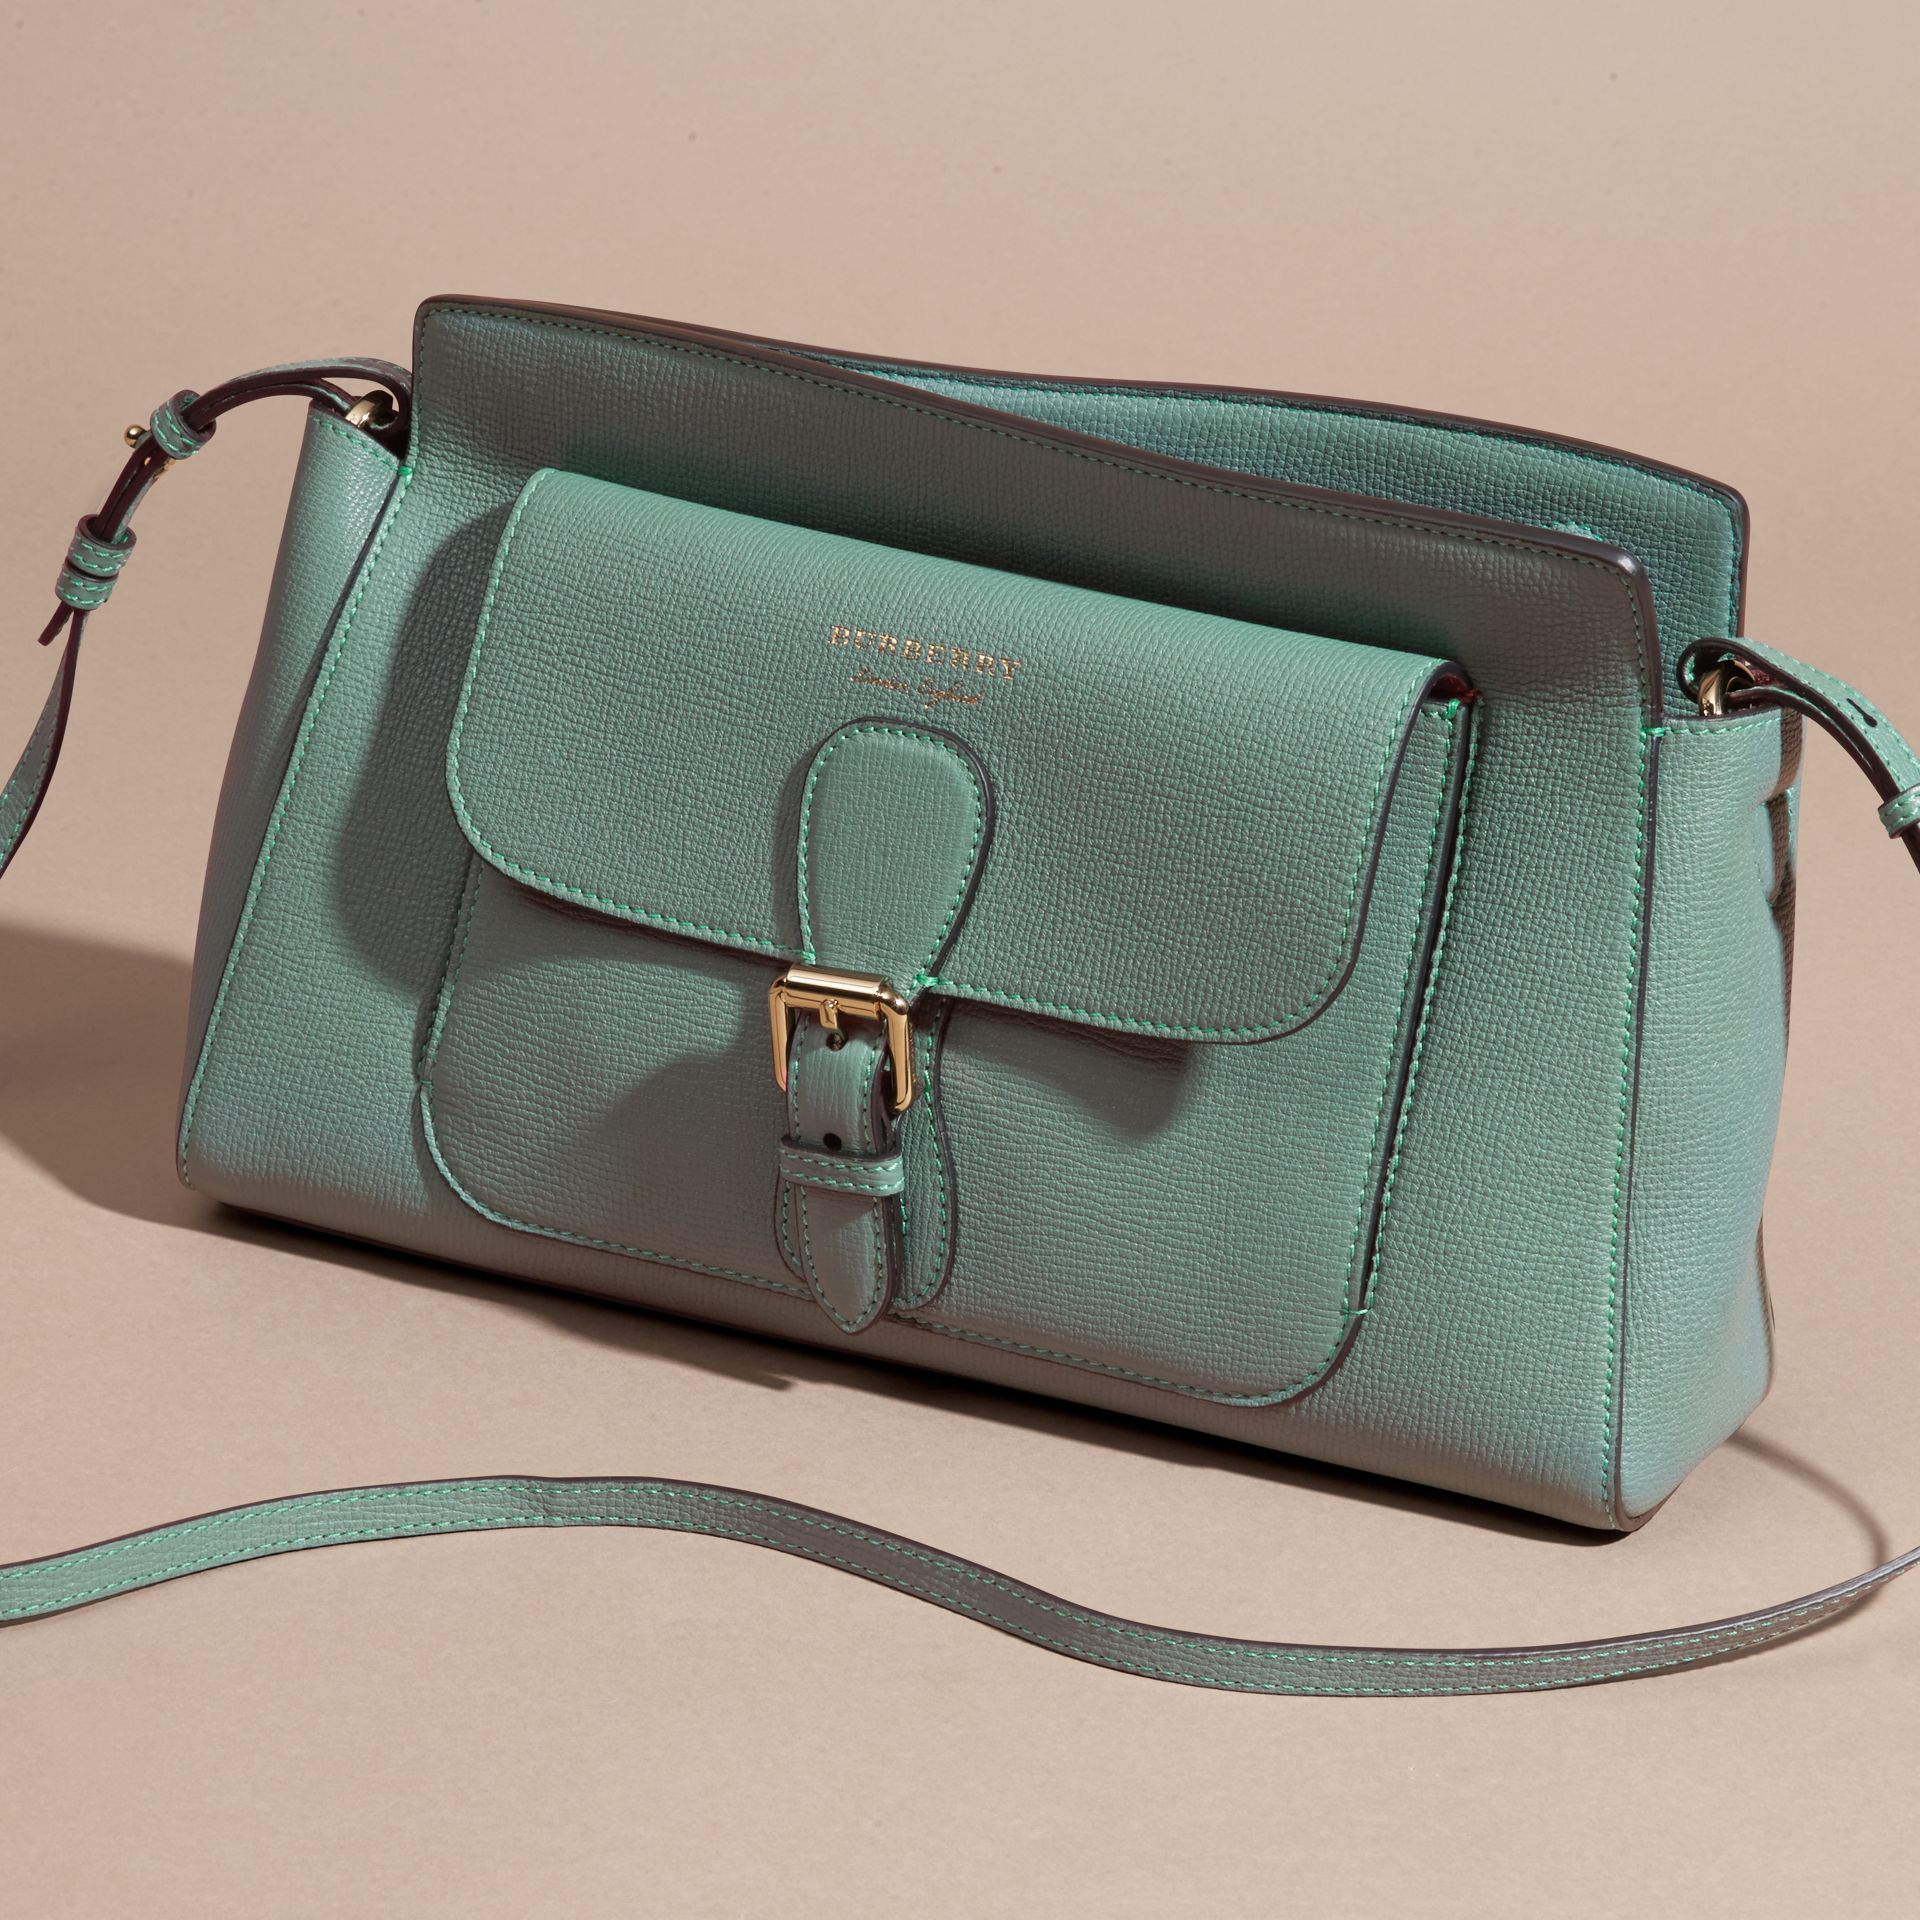 Smokey green The Saddle Clutch in Grainy Bonded Leather Smokey Green - gallery image 7